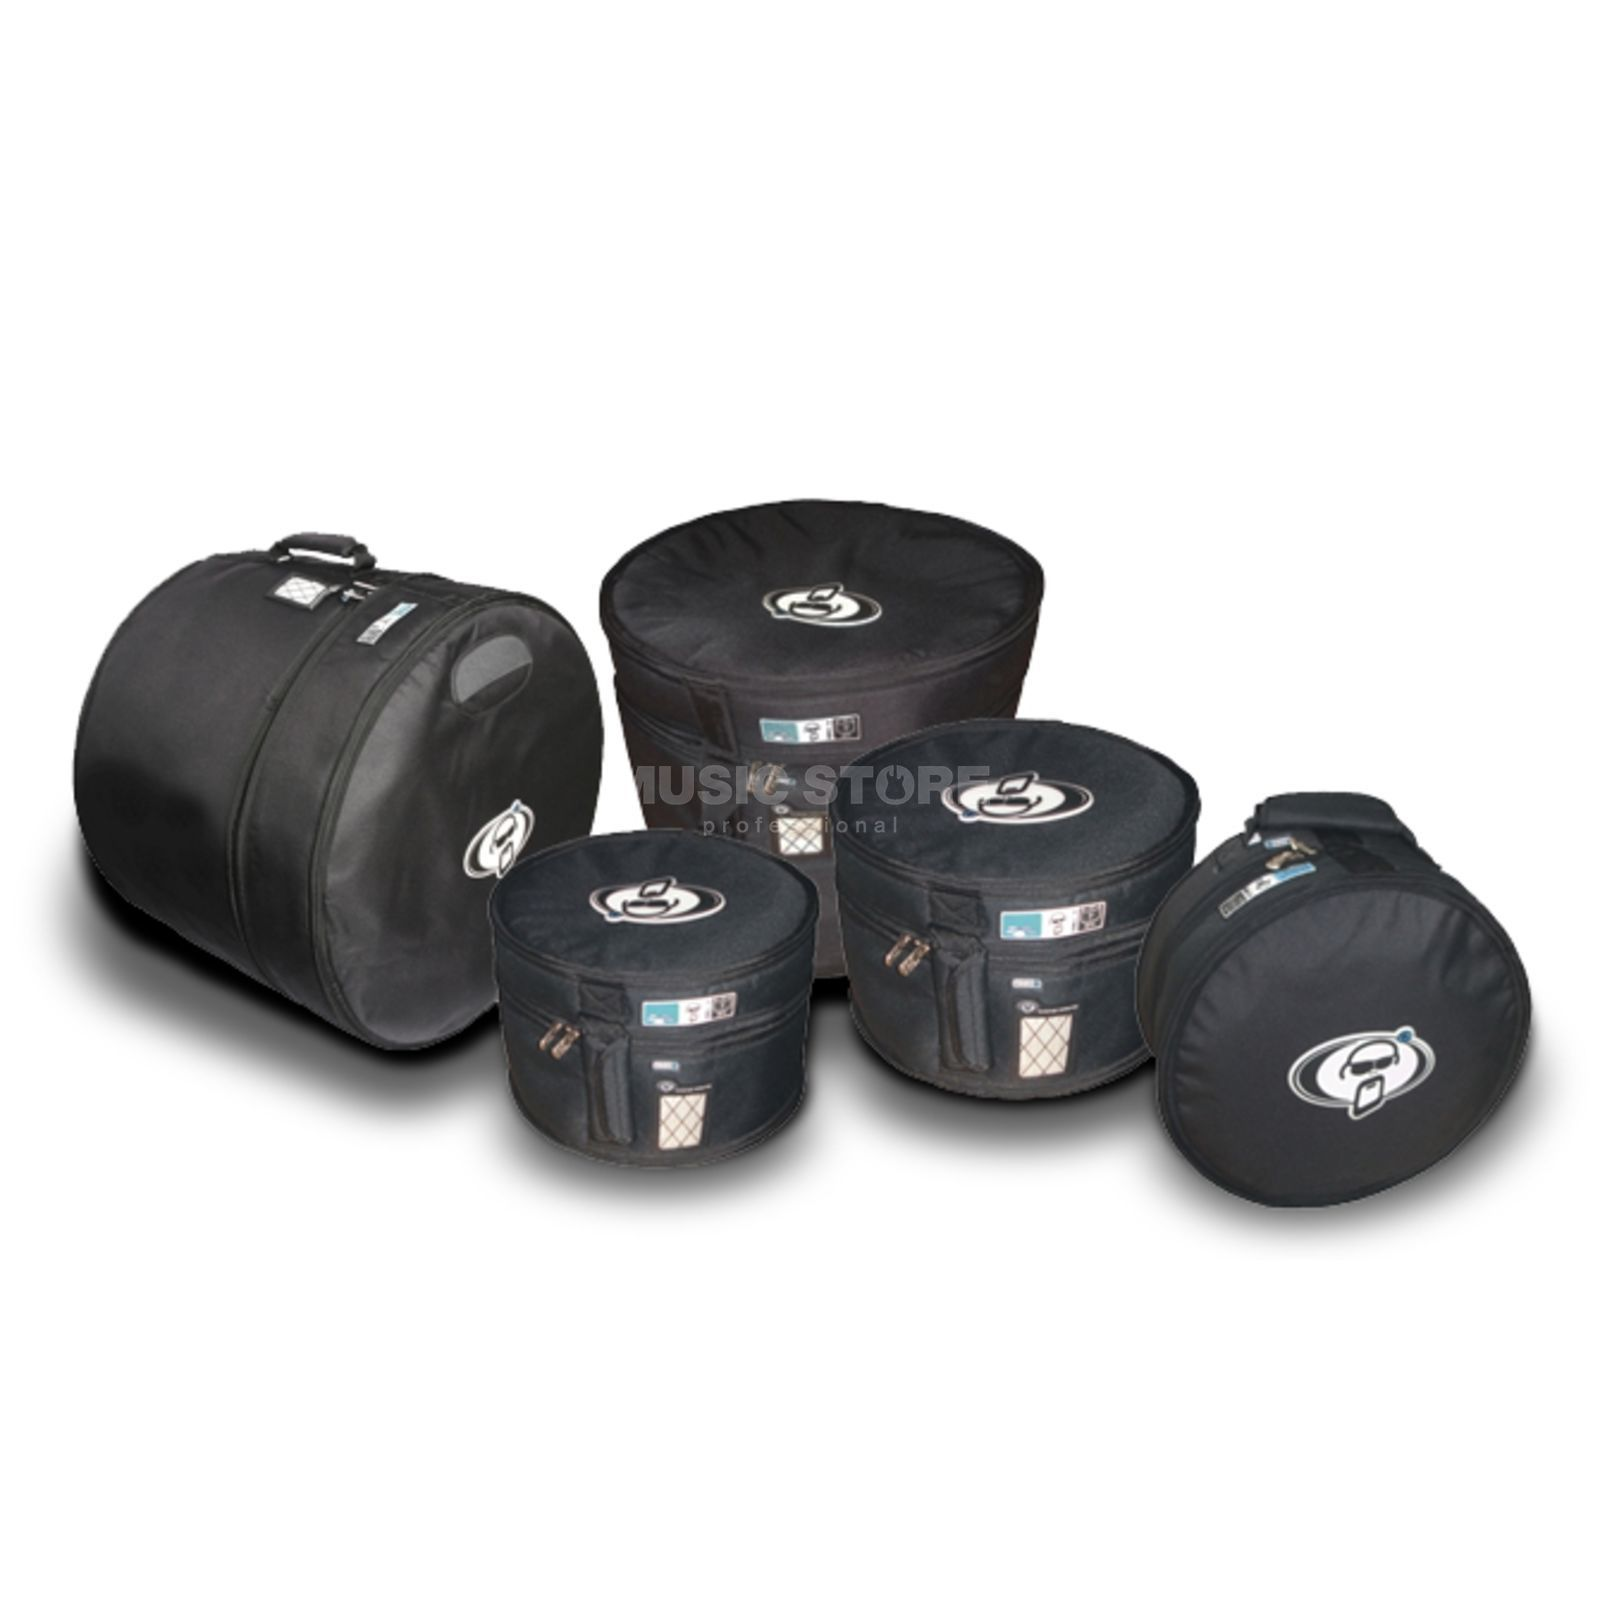 "Protection Racket BagSet SET 8, 22""x18"",12""x10"", 13""x11"", 16""x16"", 14""x6,5"" Produktbillede"